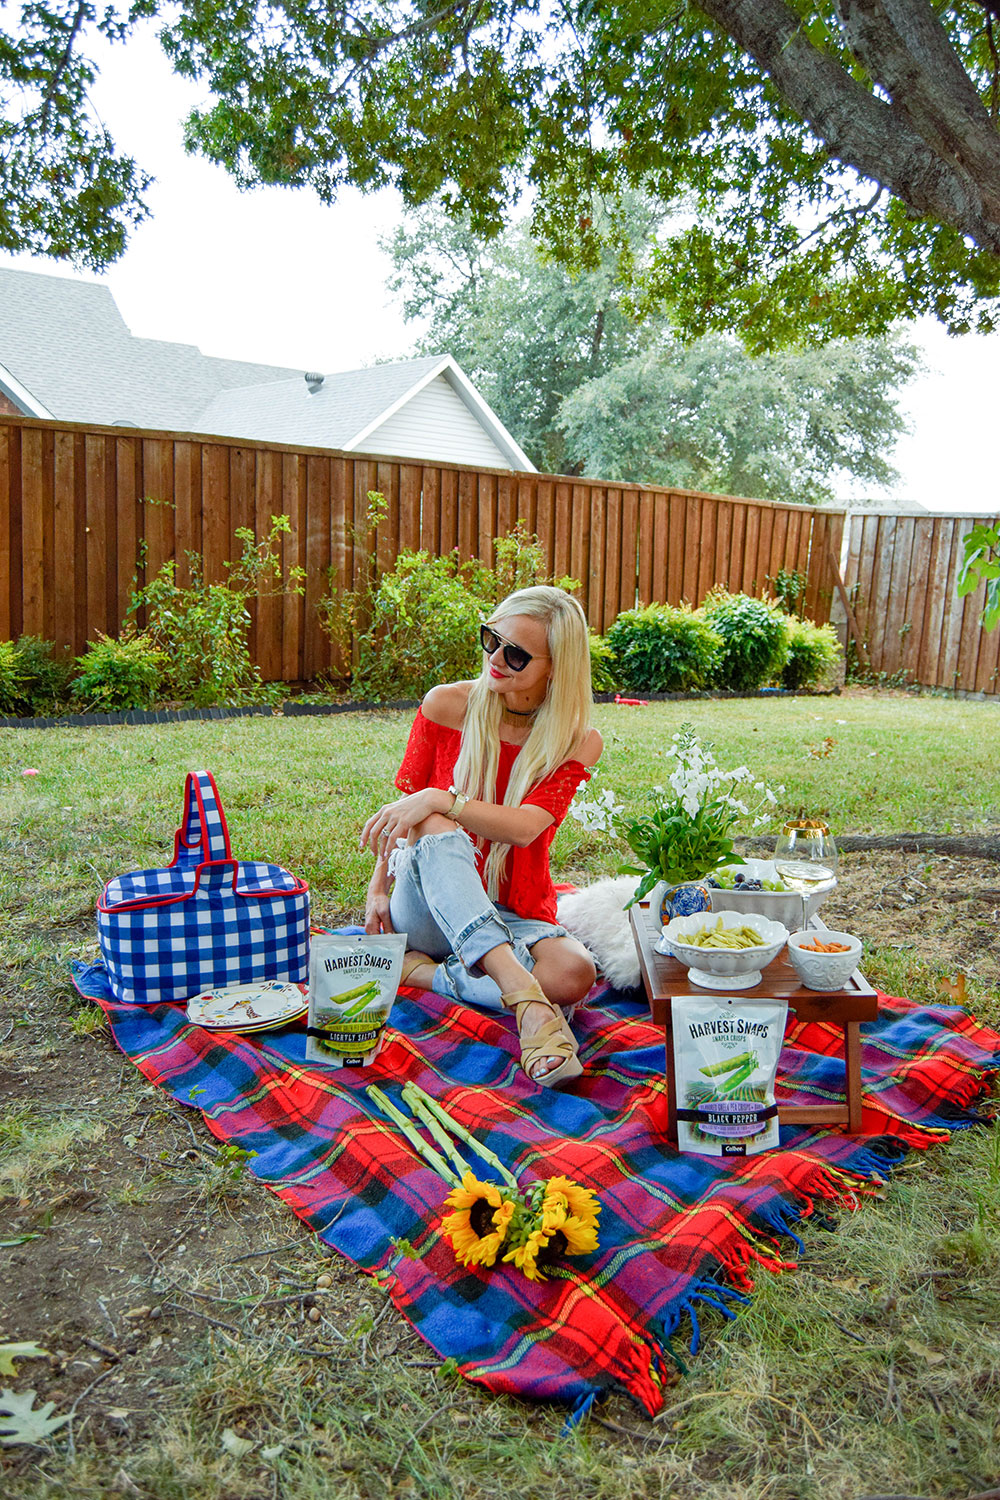 vandi-fair-dallas-fashion-blog-lauren-vandiver-southern-texas-lifestyle-fitness-blogger-healthy-snacking-snacks-harvest-snaps-snap-pea-crisps-picnic-9